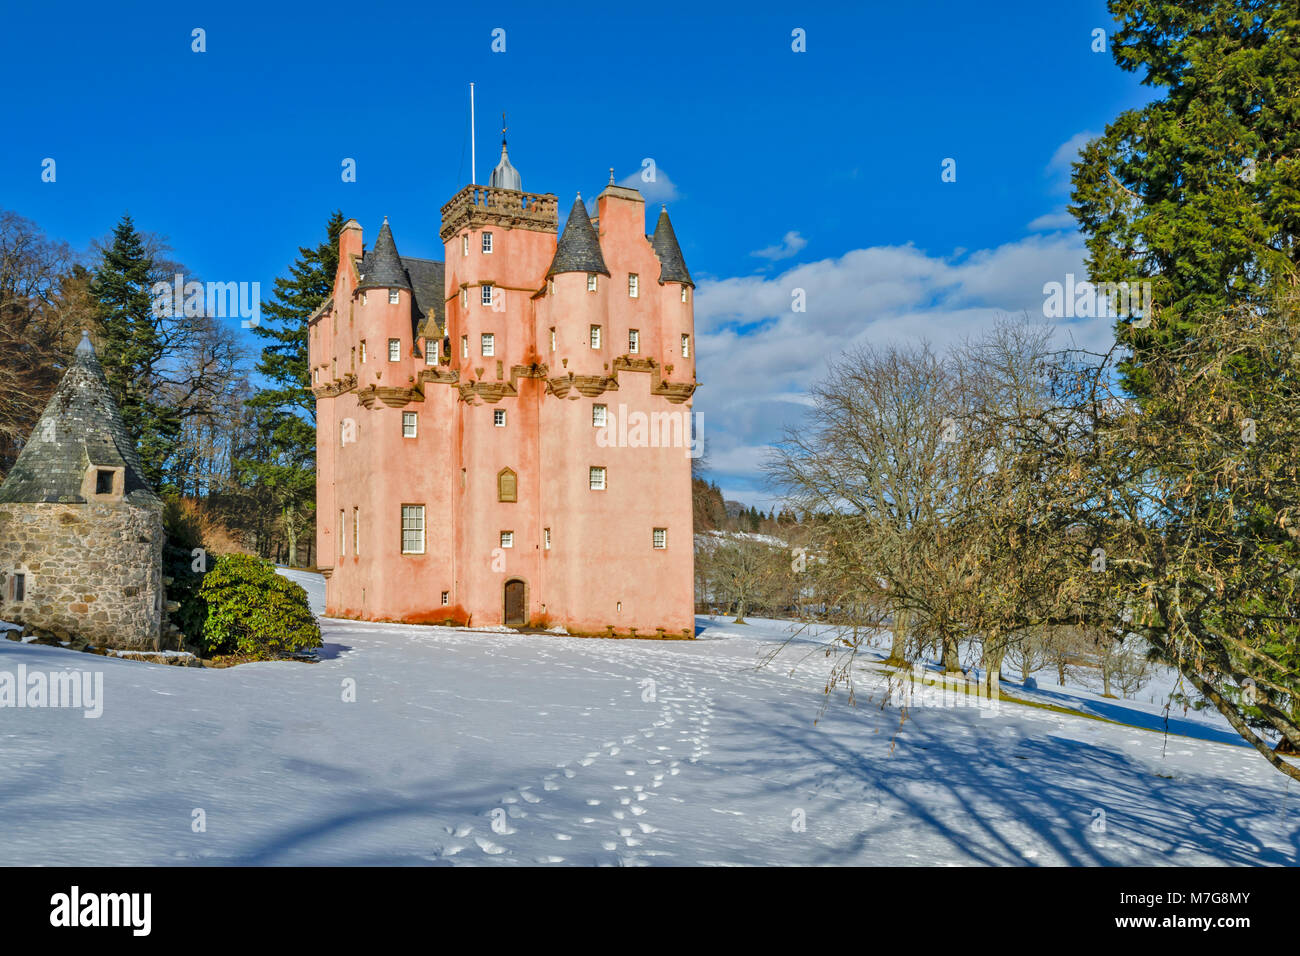 CRAIGIEVAR CASTLE ABERDEENSHIRE SCOTLAND A BLUE SKY AND FOOTPRINTS LEAD TOWARDS THE PINK TOWER SURROUNDED BY FIR - Stock Image